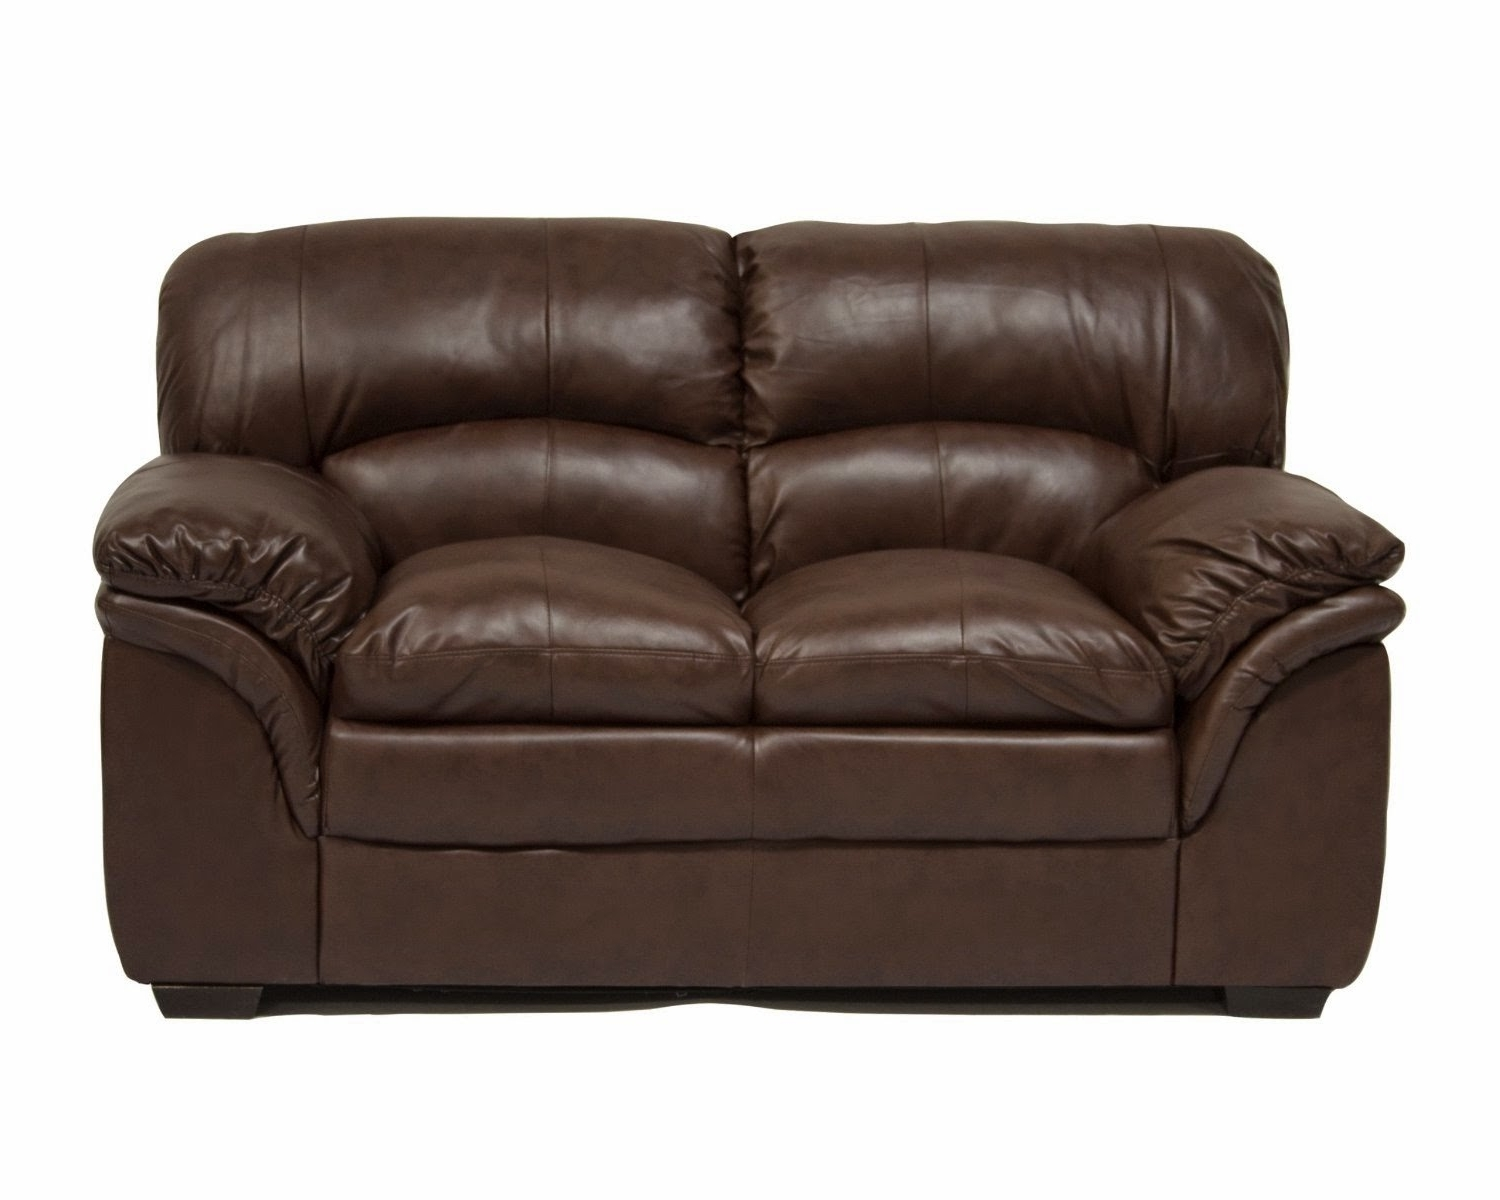 Most Recent The Best Reclining Sofas Ratings Reviews: 2 Seater Leather Within 2 Seater Recliner Leather Sofas (View 11 of 15)